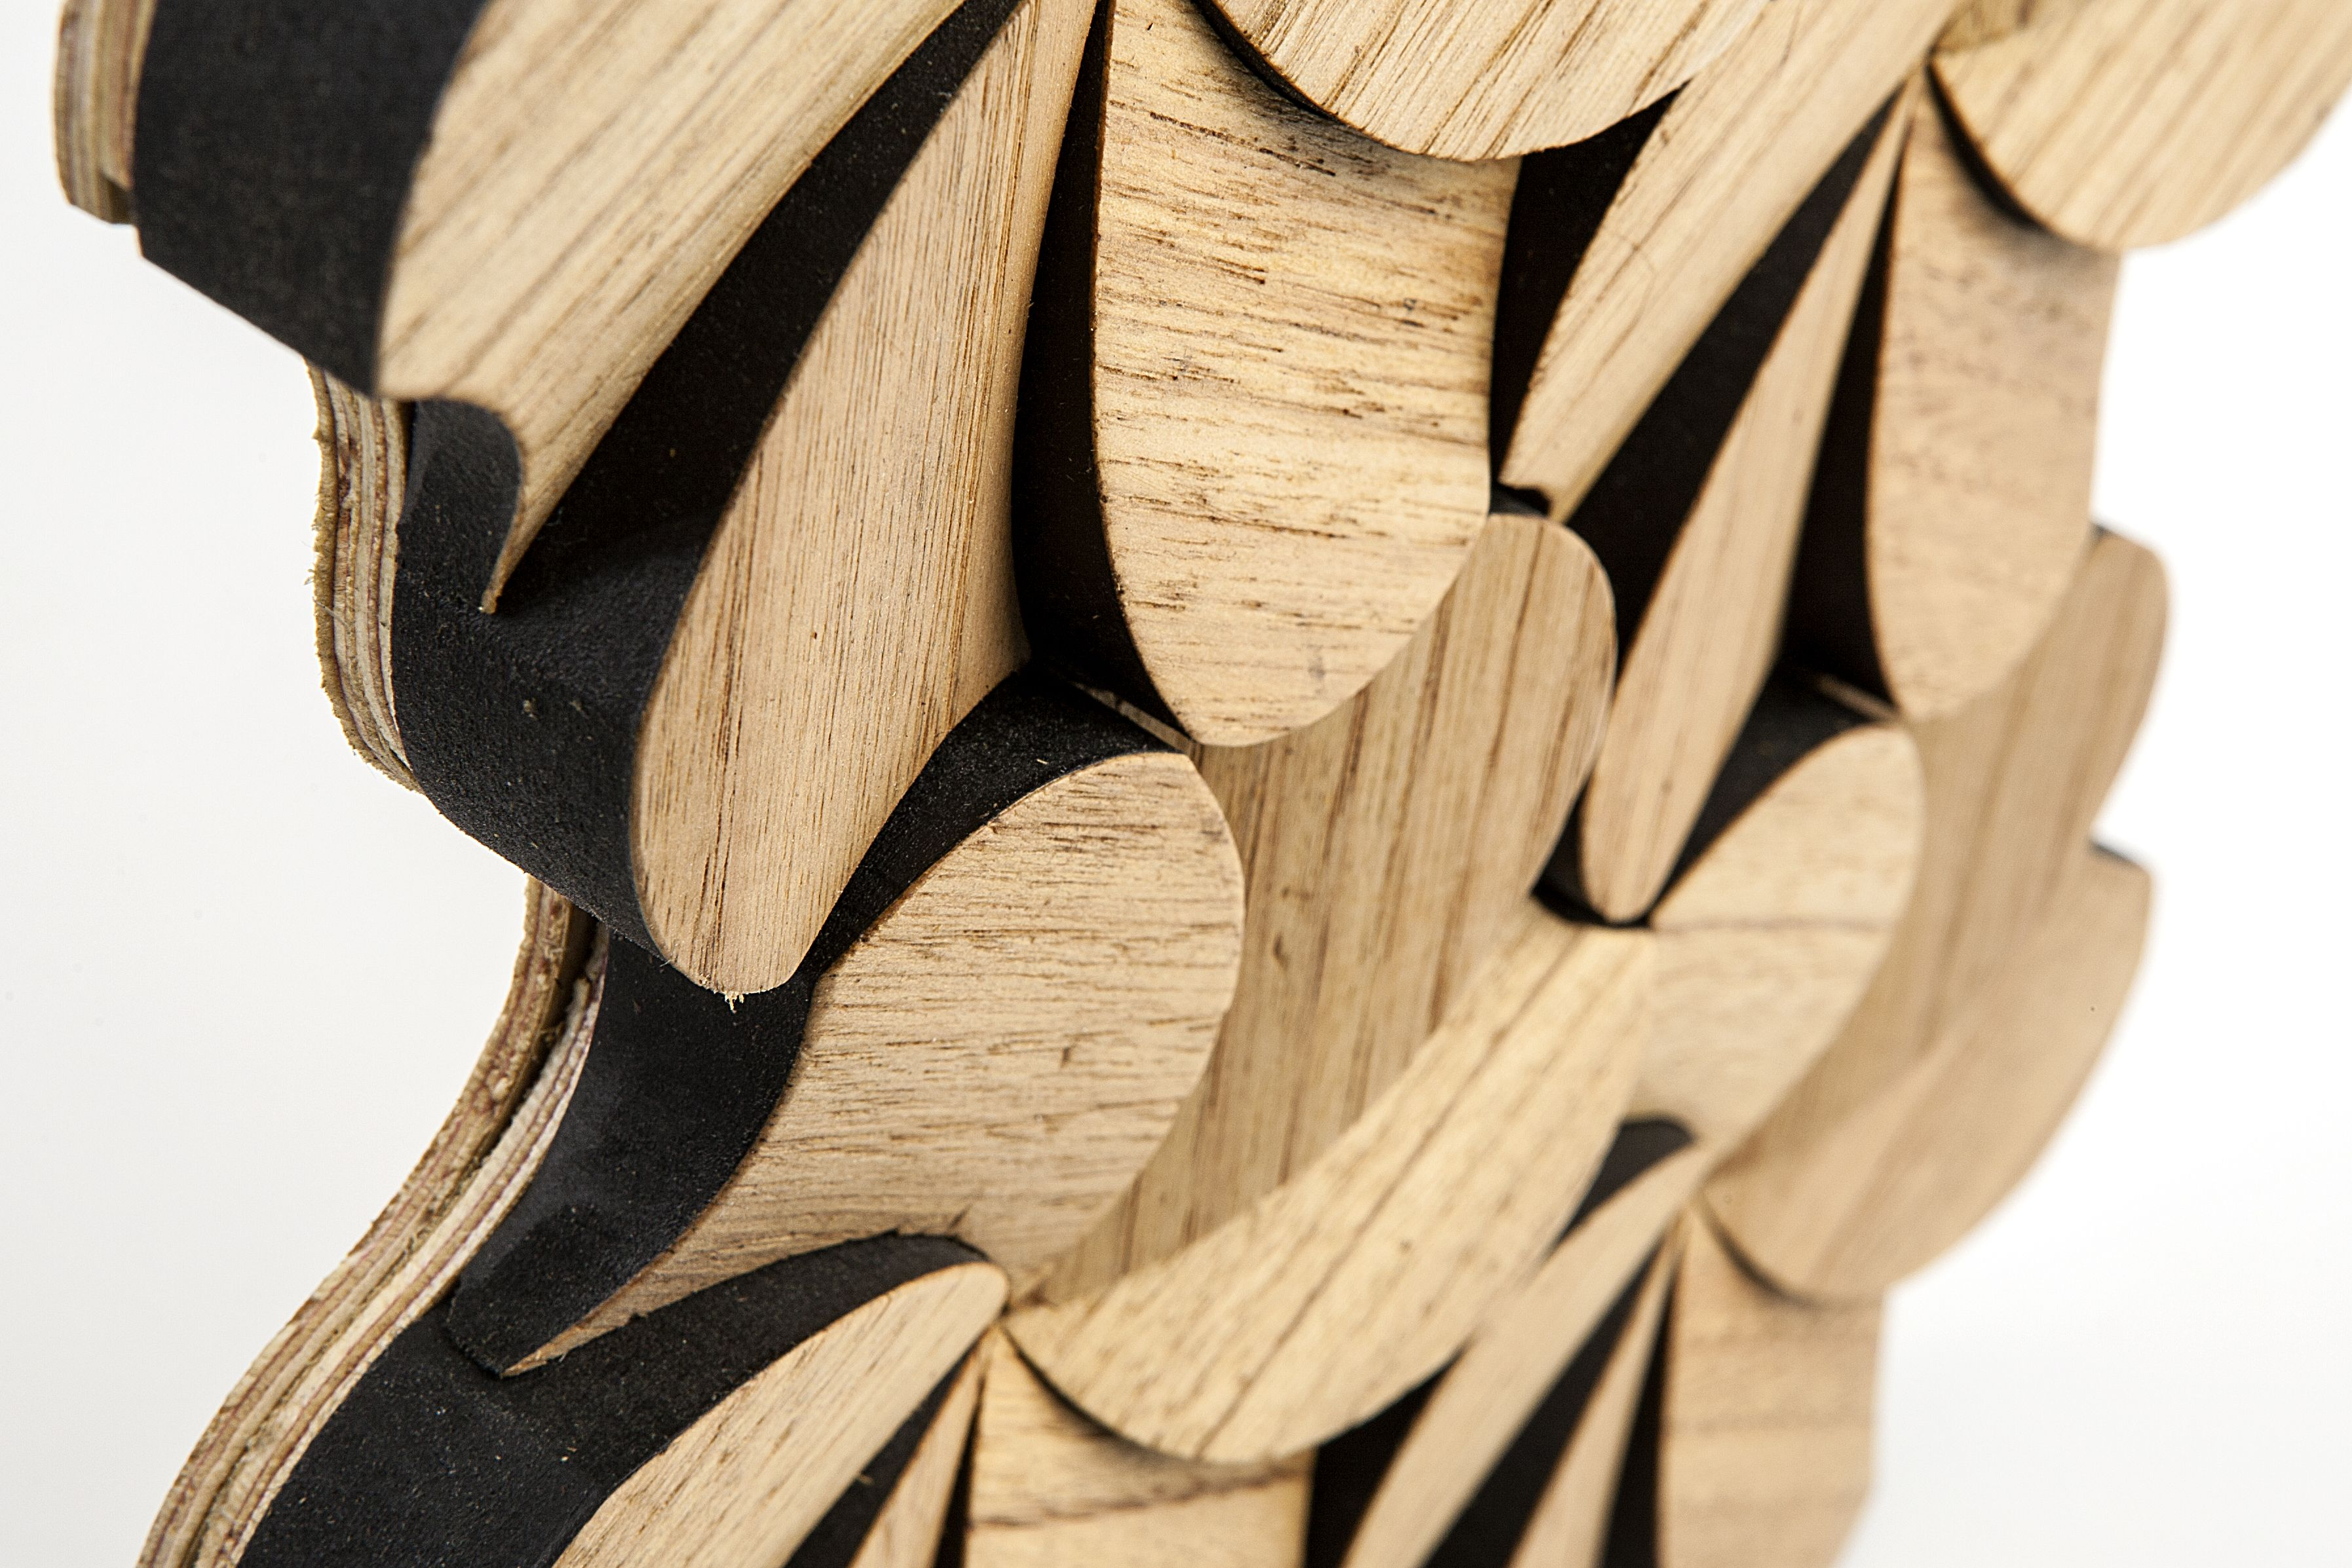 Pladec | Acoustic panels, Wood interiors and Interior architecture